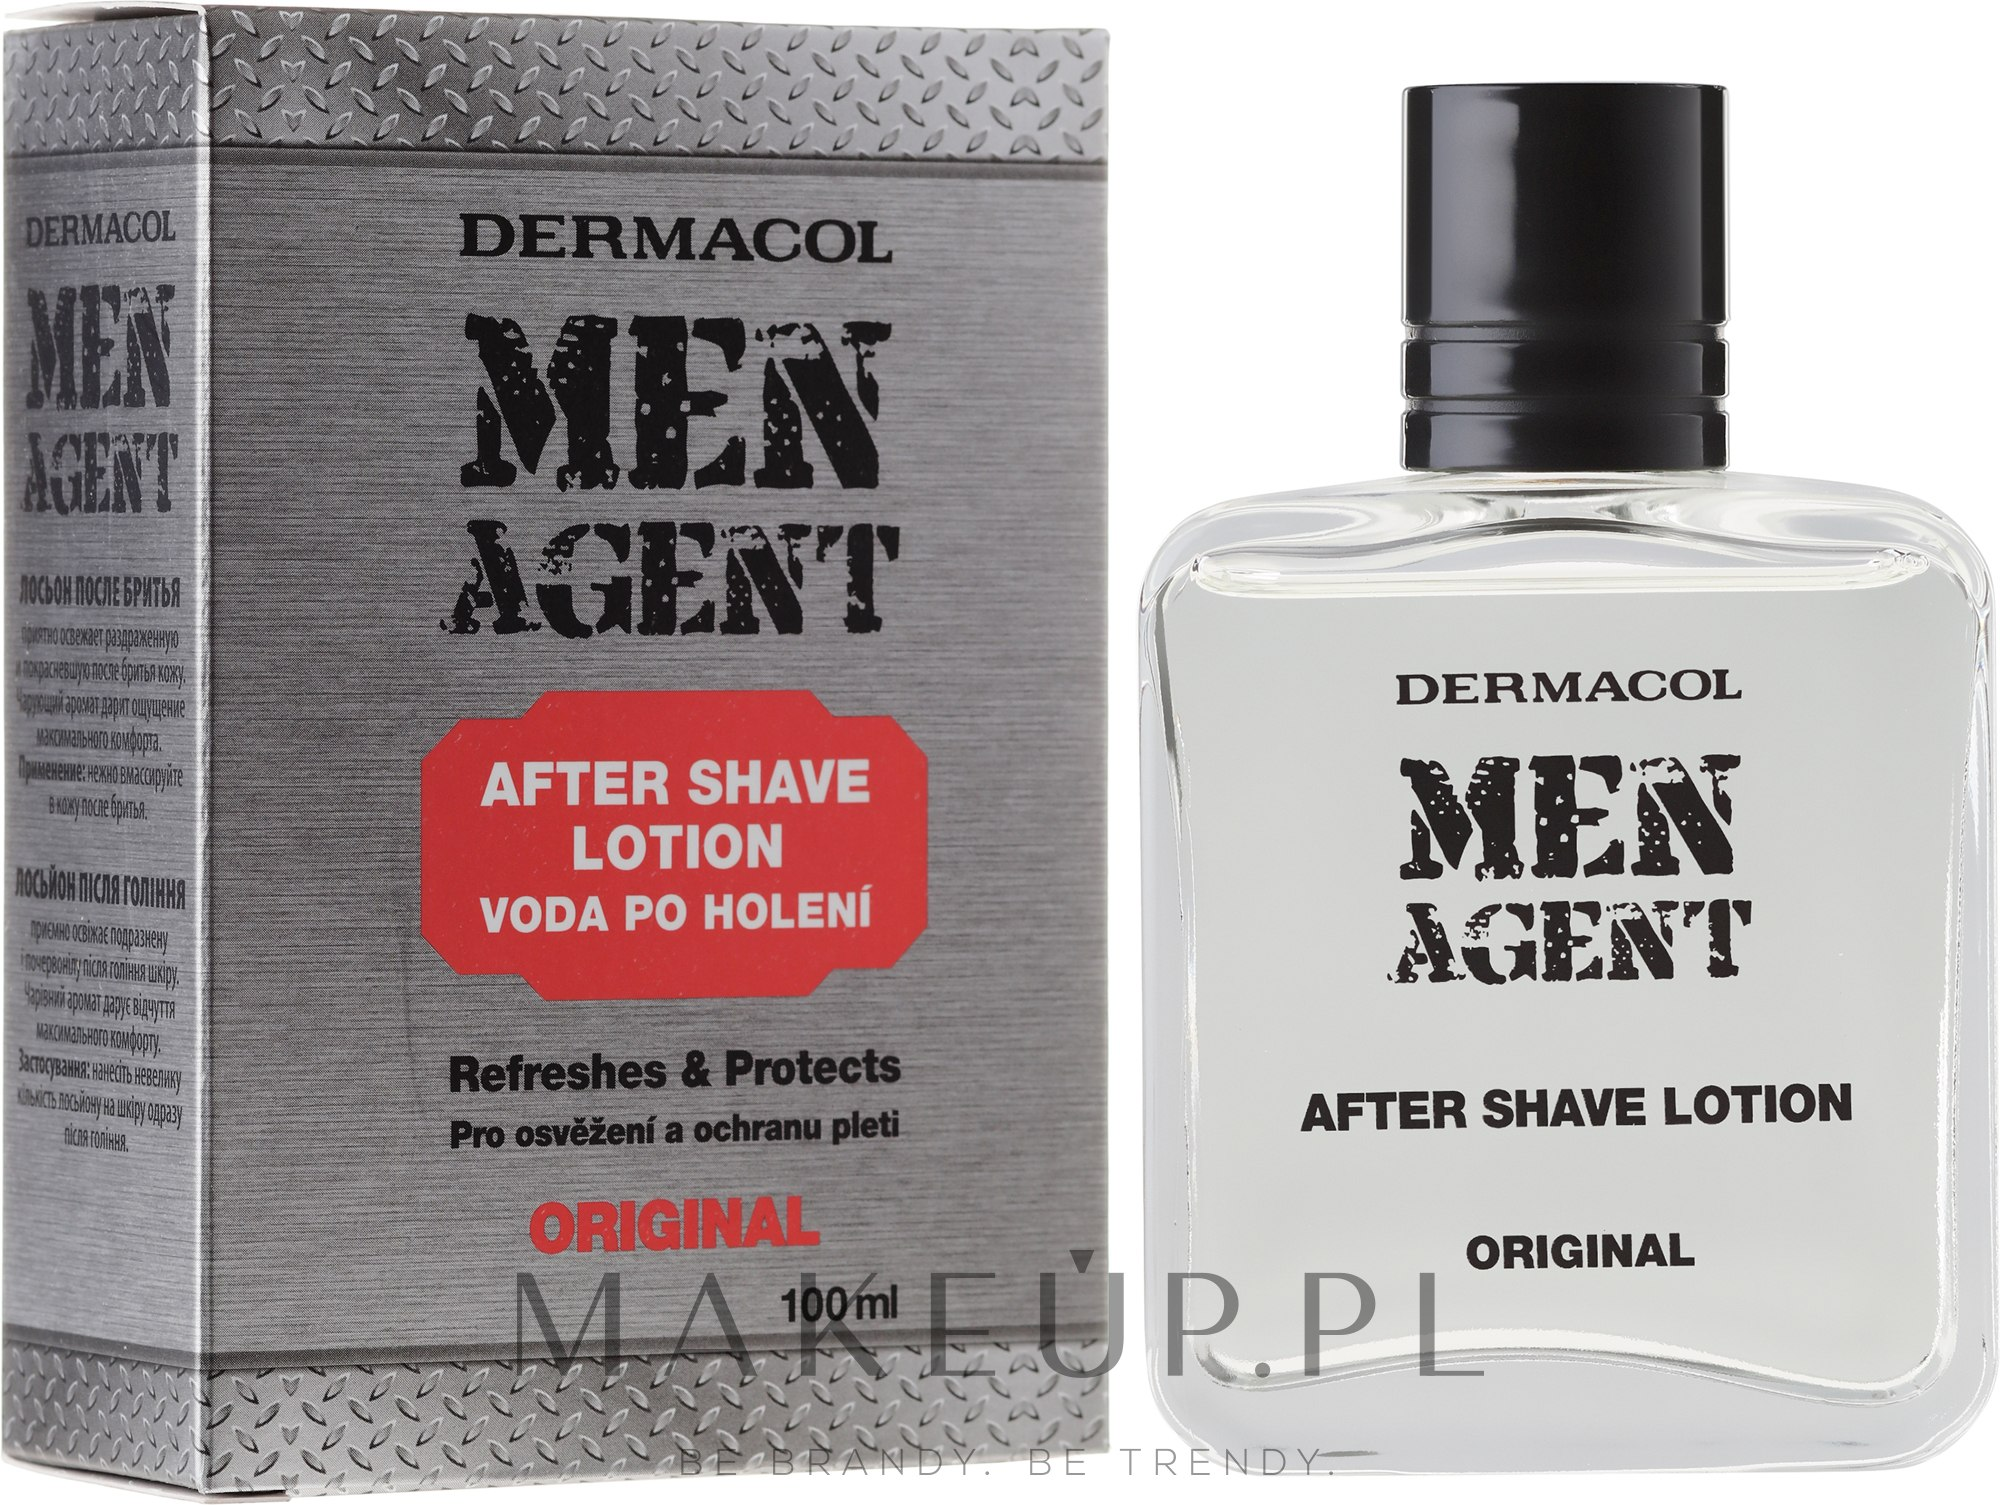 dermacol men agent - original